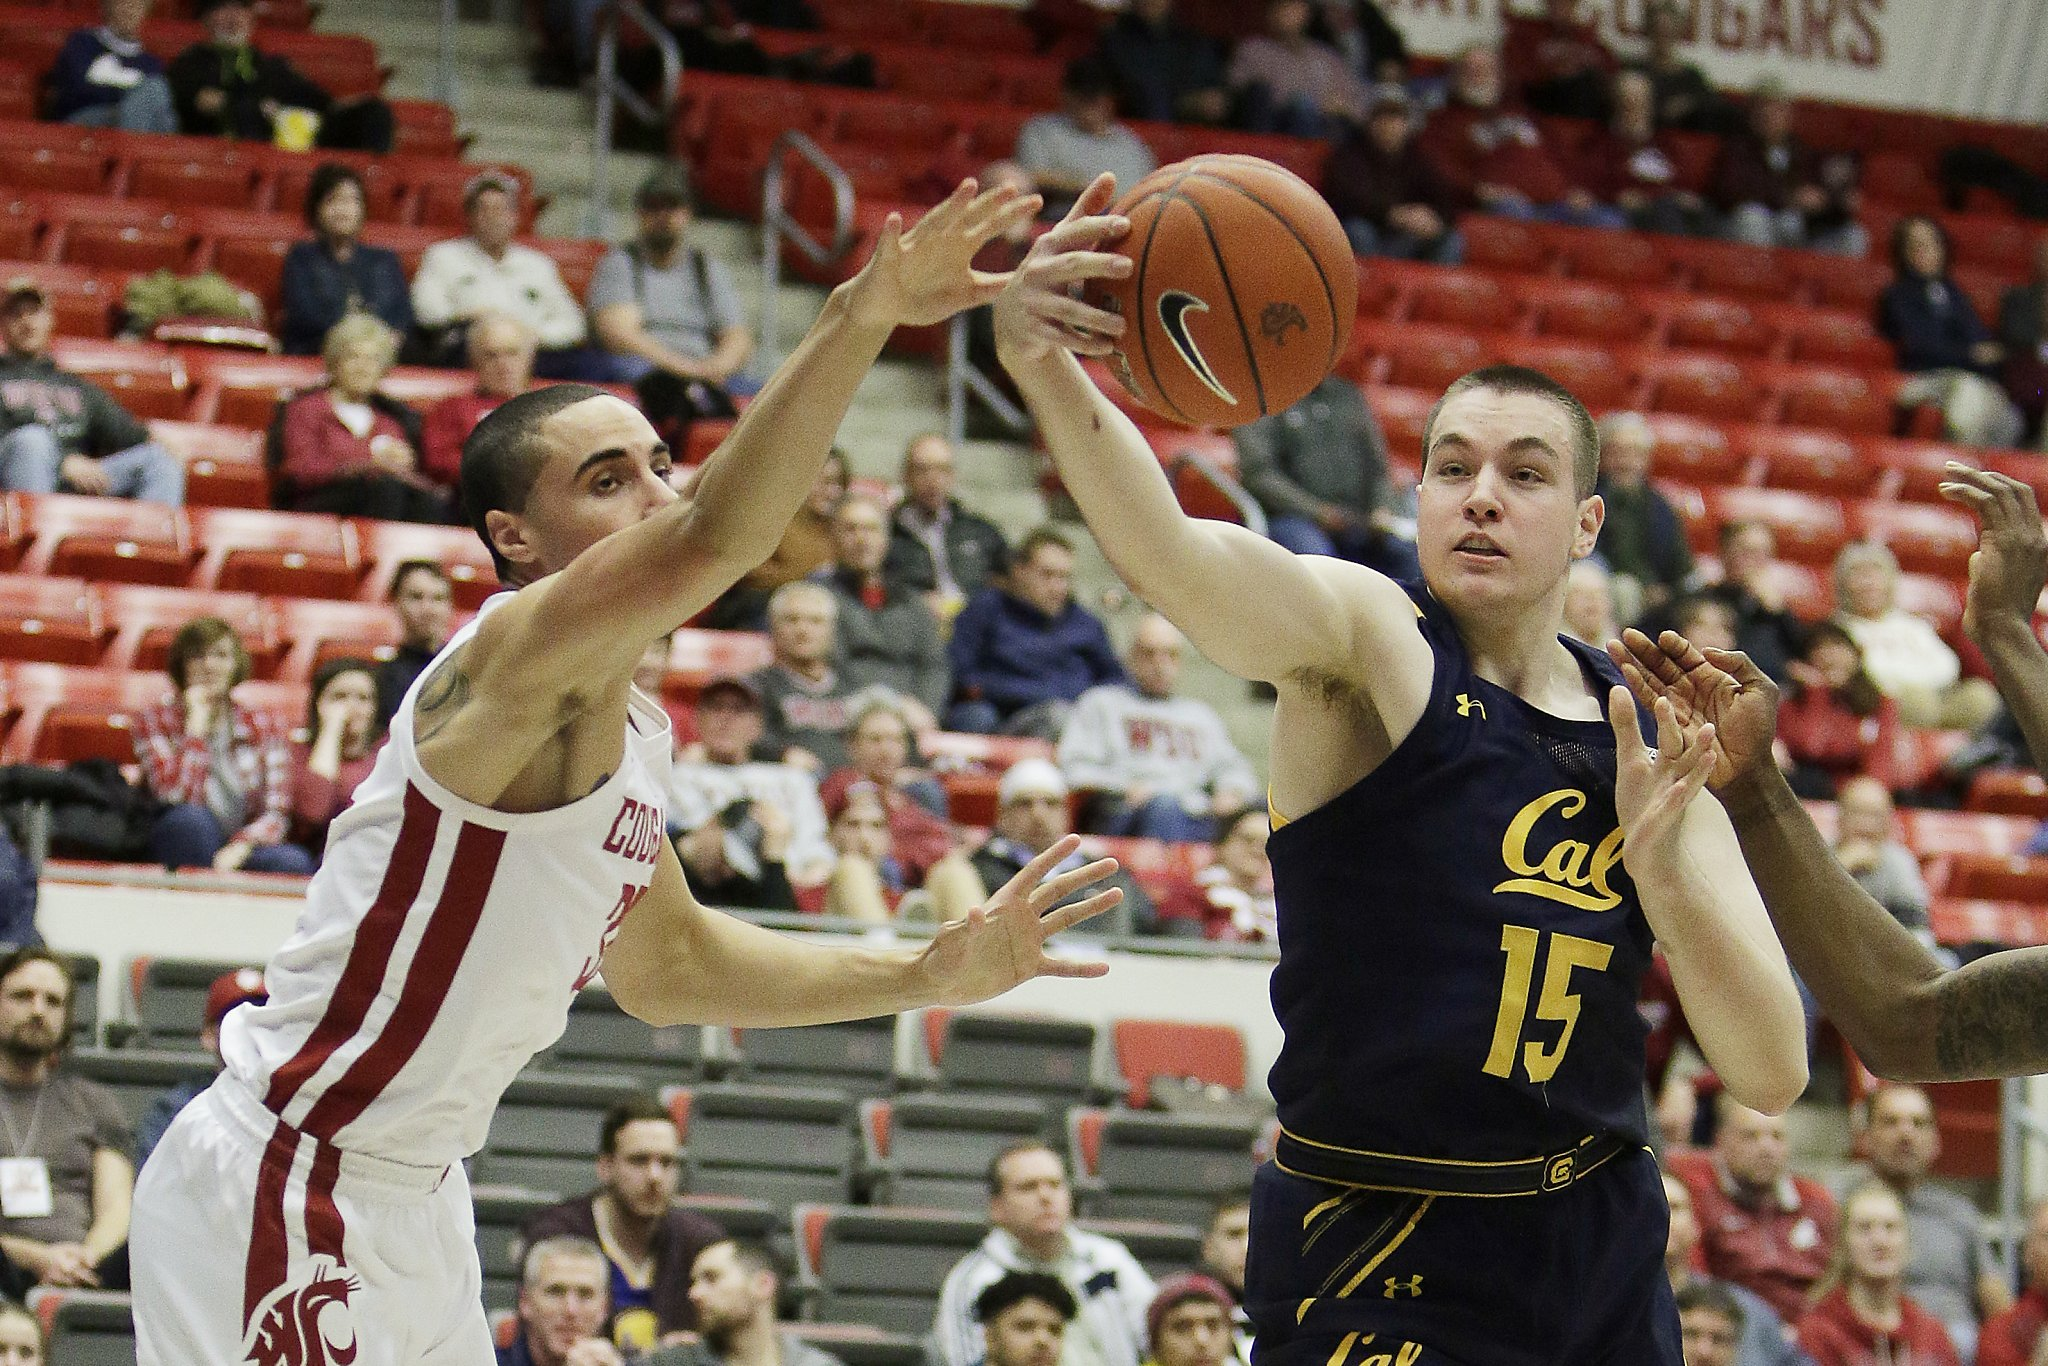 Cal tops WSU, gets first road victory of the season